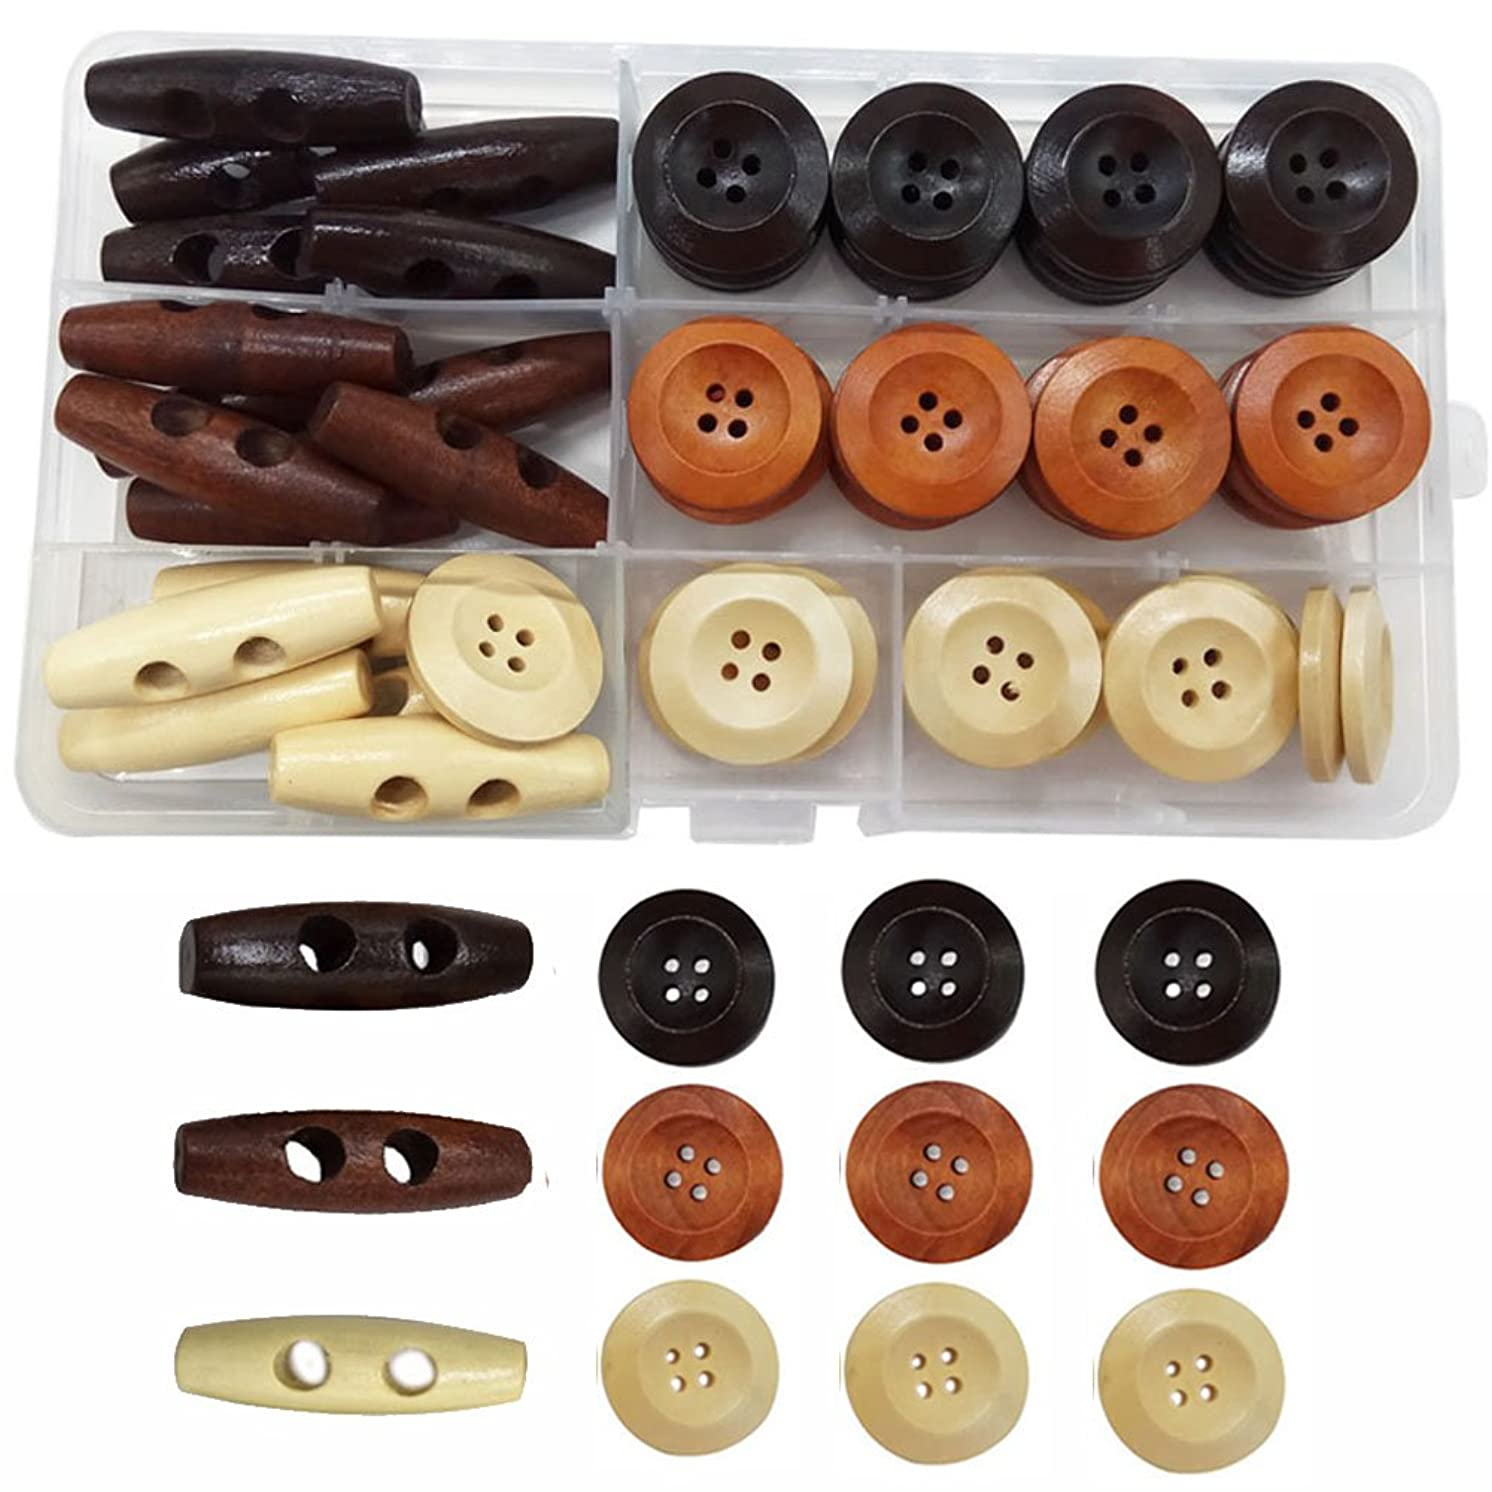 IDOXE Large Round Wood Buttons for Crafts Wooden Toggle Button Assorted 1 inch 4 Hole Sewing DIY Supplies